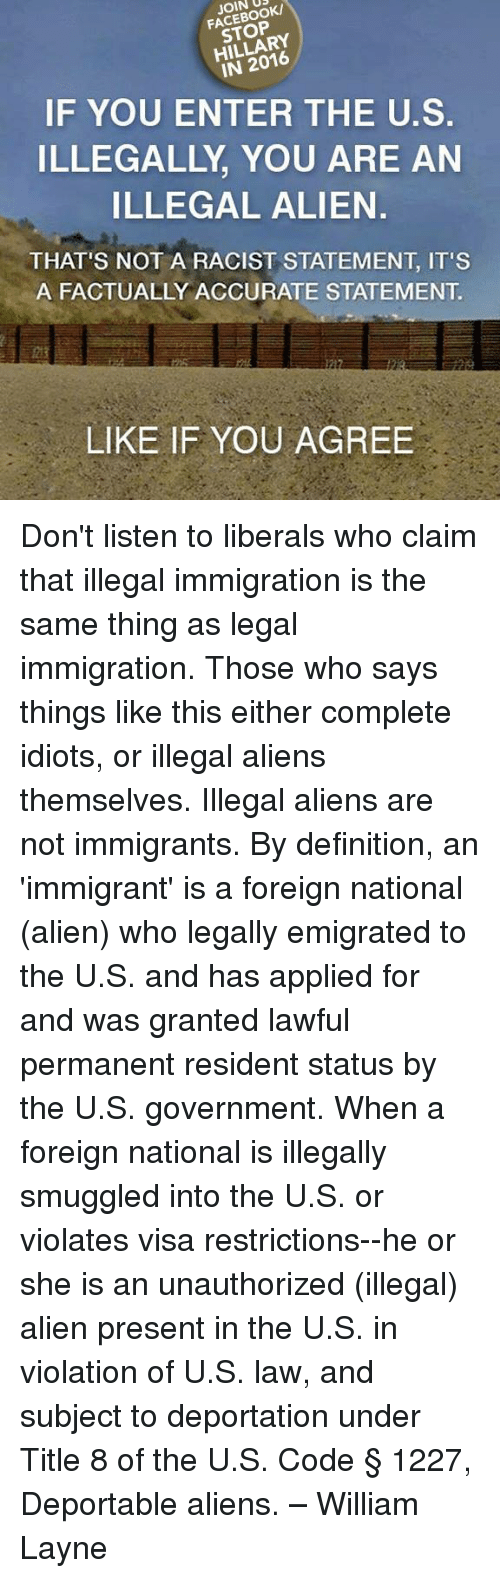 Memes, Aliens, and Alien: JOIN DRK  STOP  IN 2016  IF YOU ENTER THE U.S.  ILLEGALLY YOU ARE AN  ILLEGAL ALIEN.  THAT'S NOT A RACIST STATEMENT IT'S  A FACTUALLY ACCURATE STATEMENT  LIKE IF YOU AGREE Don't listen to liberals who claim that illegal immigration is the same thing as legal immigration. Those who says things like this either complete idiots, or illegal aliens themselves. Illegal aliens are not immigrants. By definition, an 'immigrant' is a foreign national (alien) who legally emigrated to the U.S. and has applied for and was granted lawful permanent resident status by the U.S. government. When a foreign national is illegally smuggled into the U.S. or violates visa restrictions--he or she is an unauthorized (illegal) alien present in the U.S. in violation of U.S. law, and subject to deportation under Title 8 of the U.S. Code § 1227, Deportable aliens. – William Layne